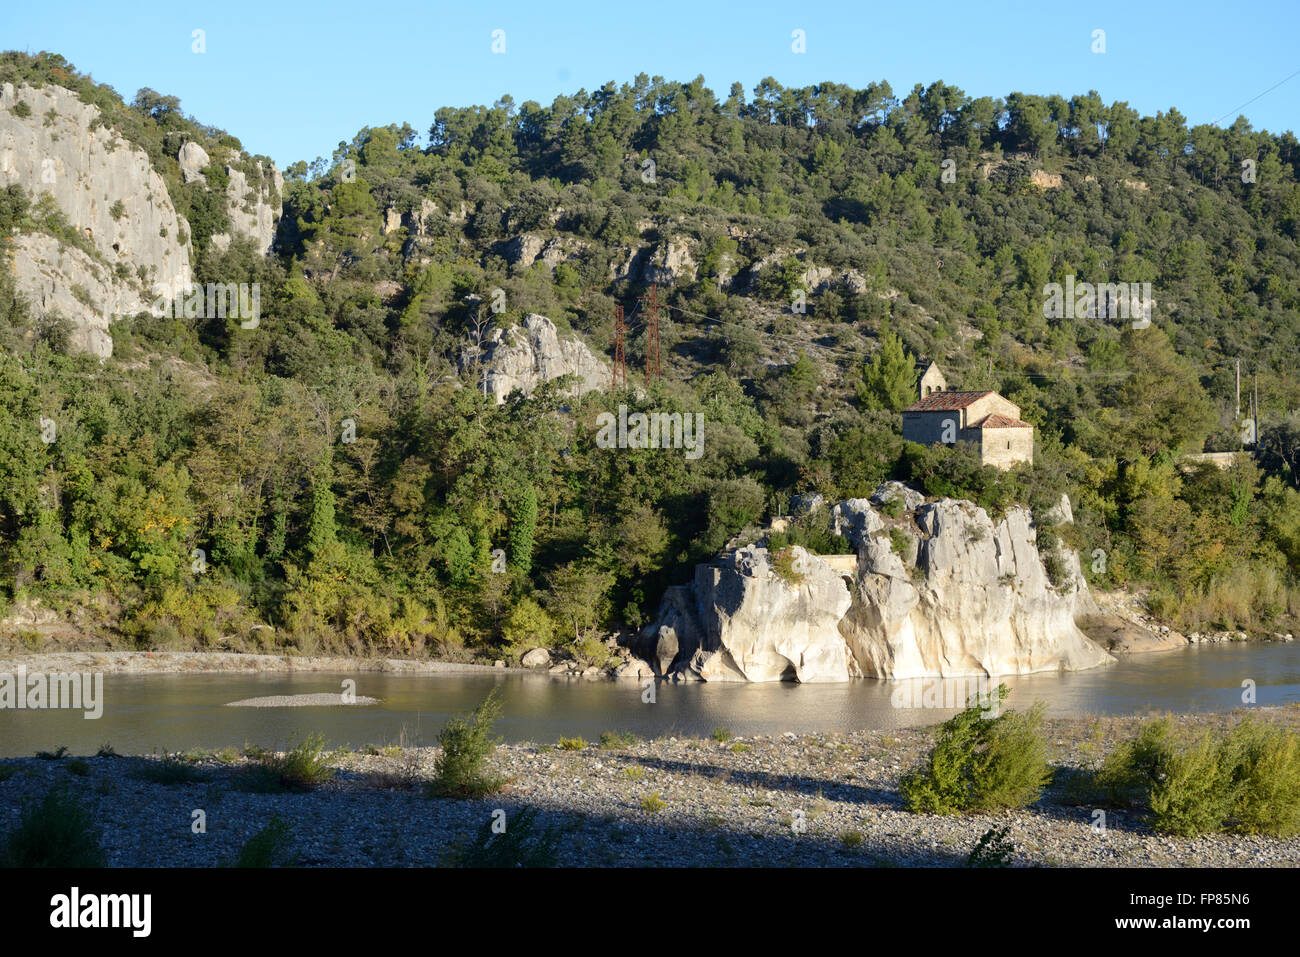 Sainte Madeleine Chapel at Mirabeau in the Luberon Regional Park Durance River & Valley Provence France - Stock Image